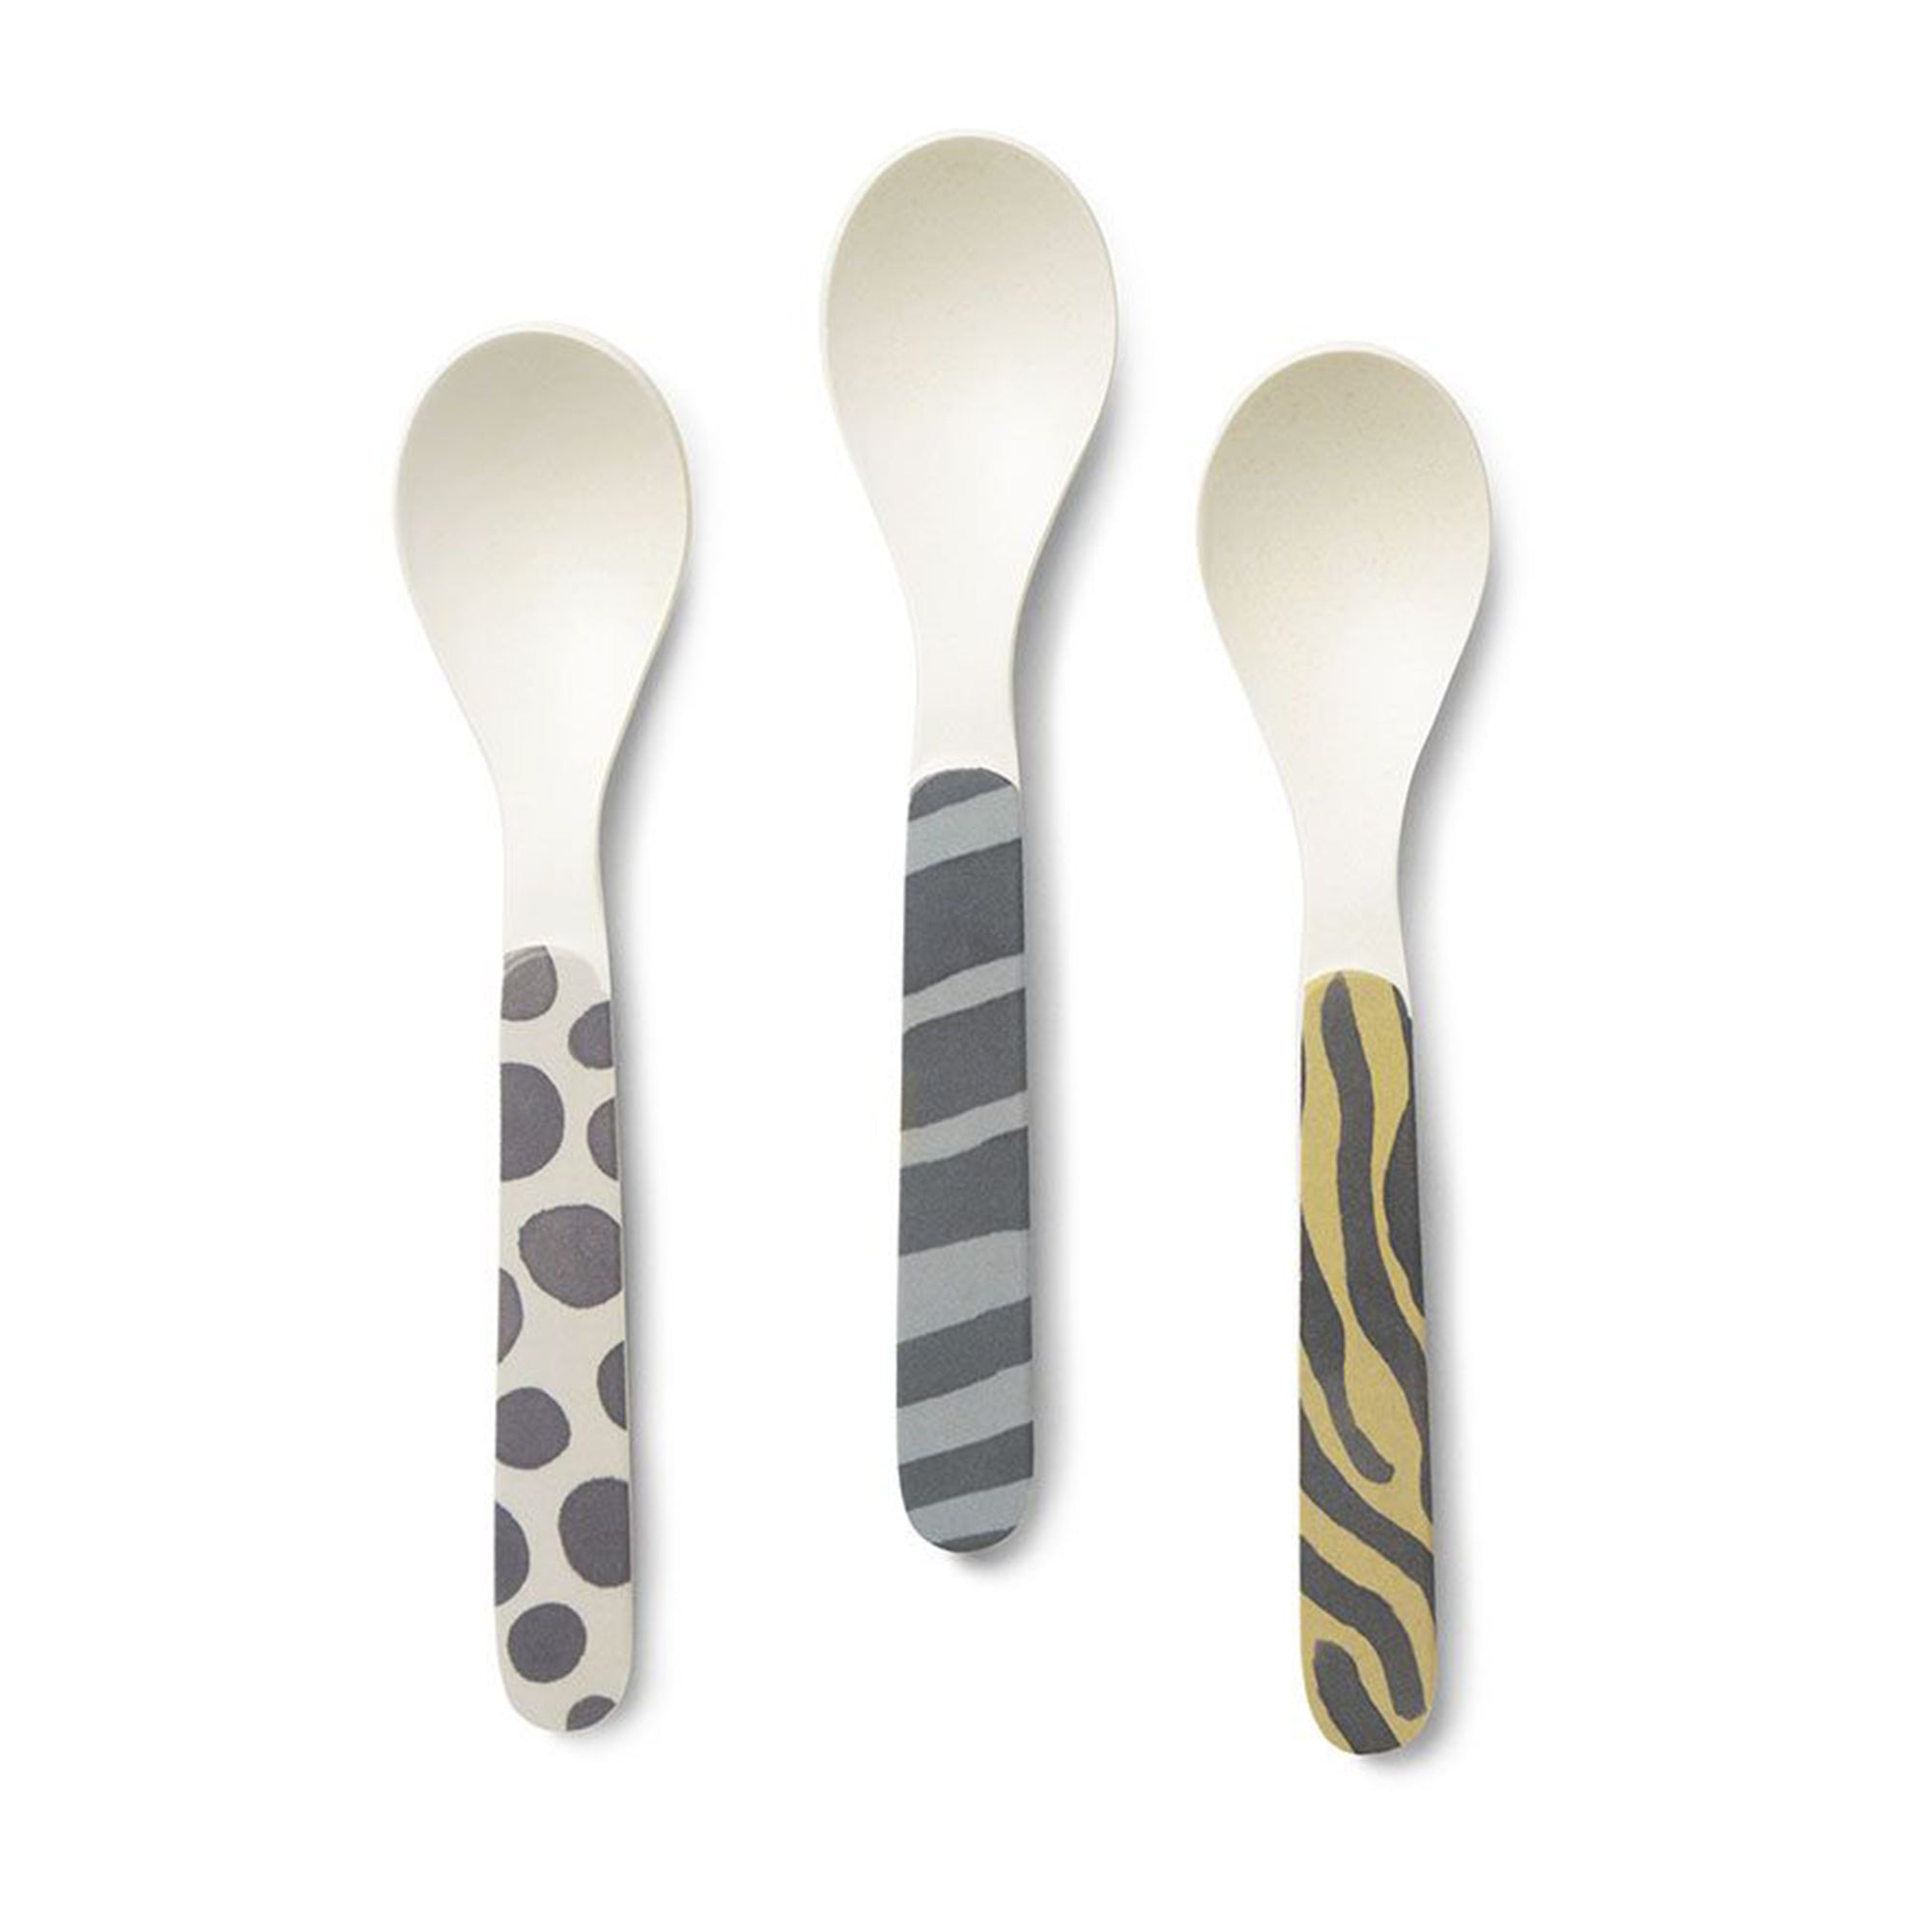 Ferm Living Safari Bamboo Spoons Set Of 3 - Scandi Minimal